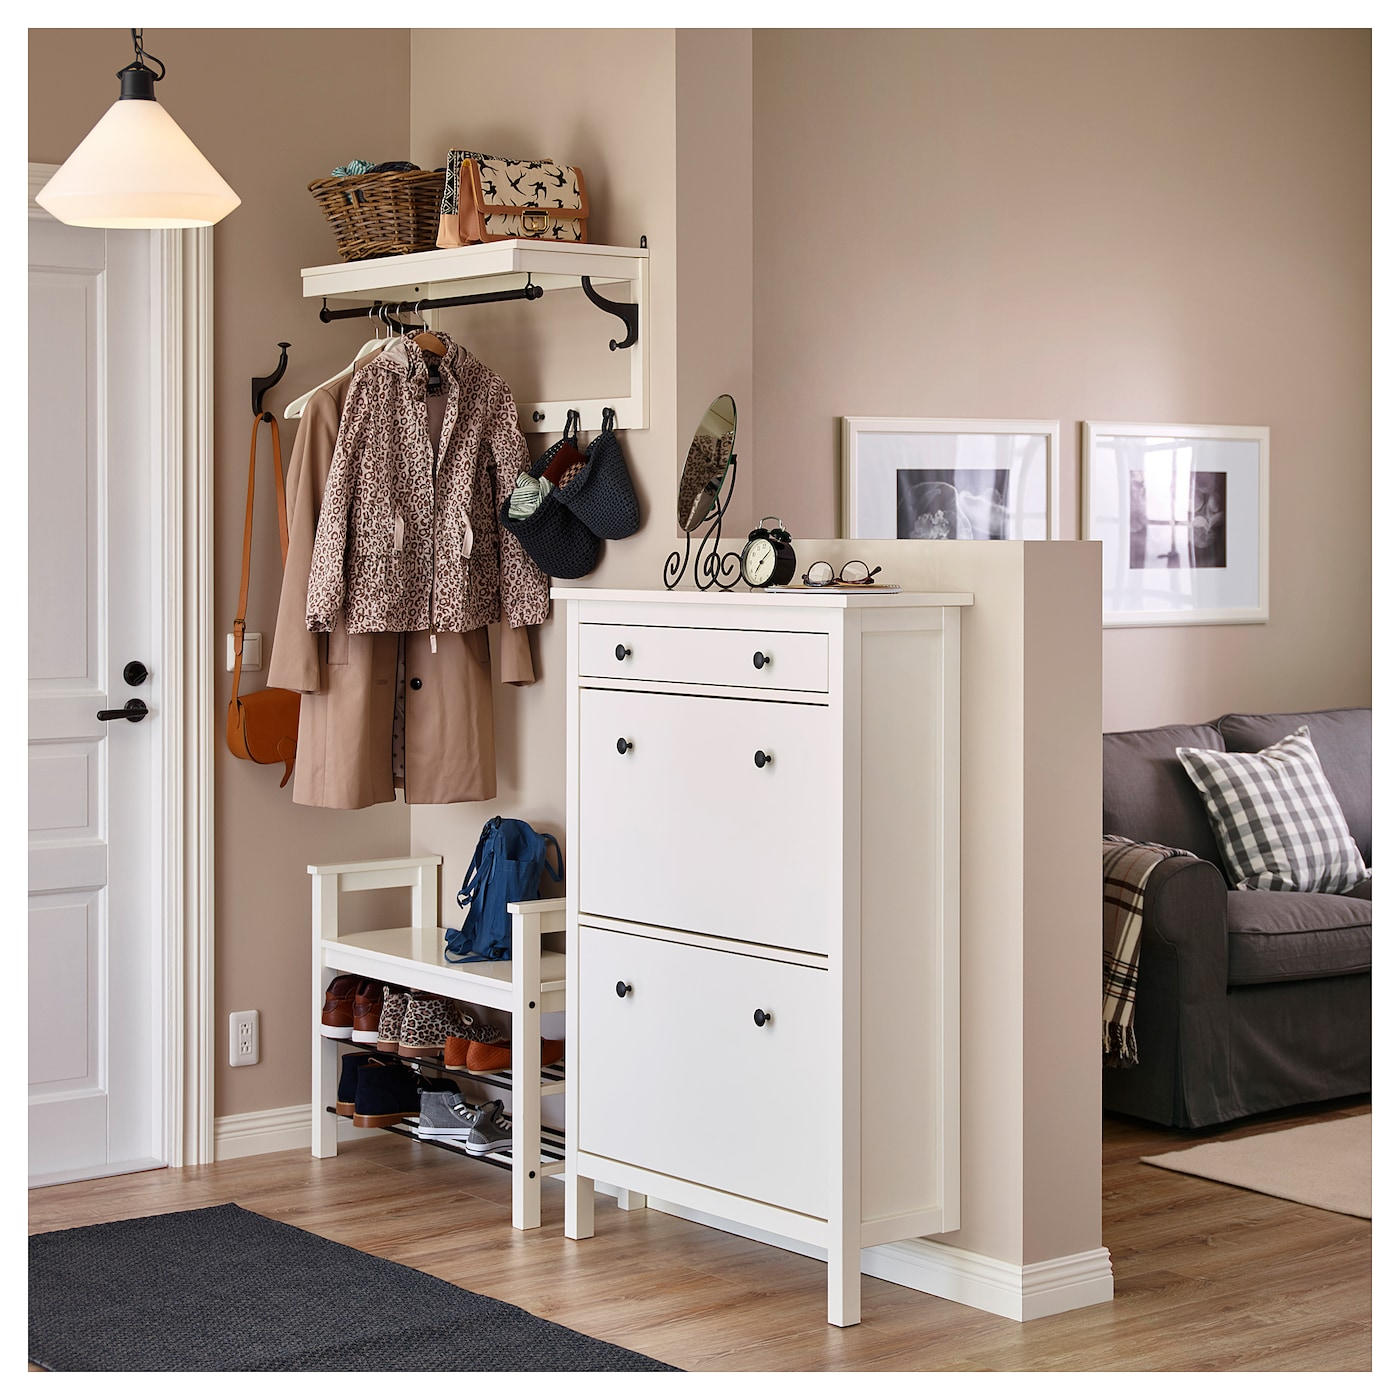 art ikea en trones gb storage organisers products white shoe cm cabinet small cabinets